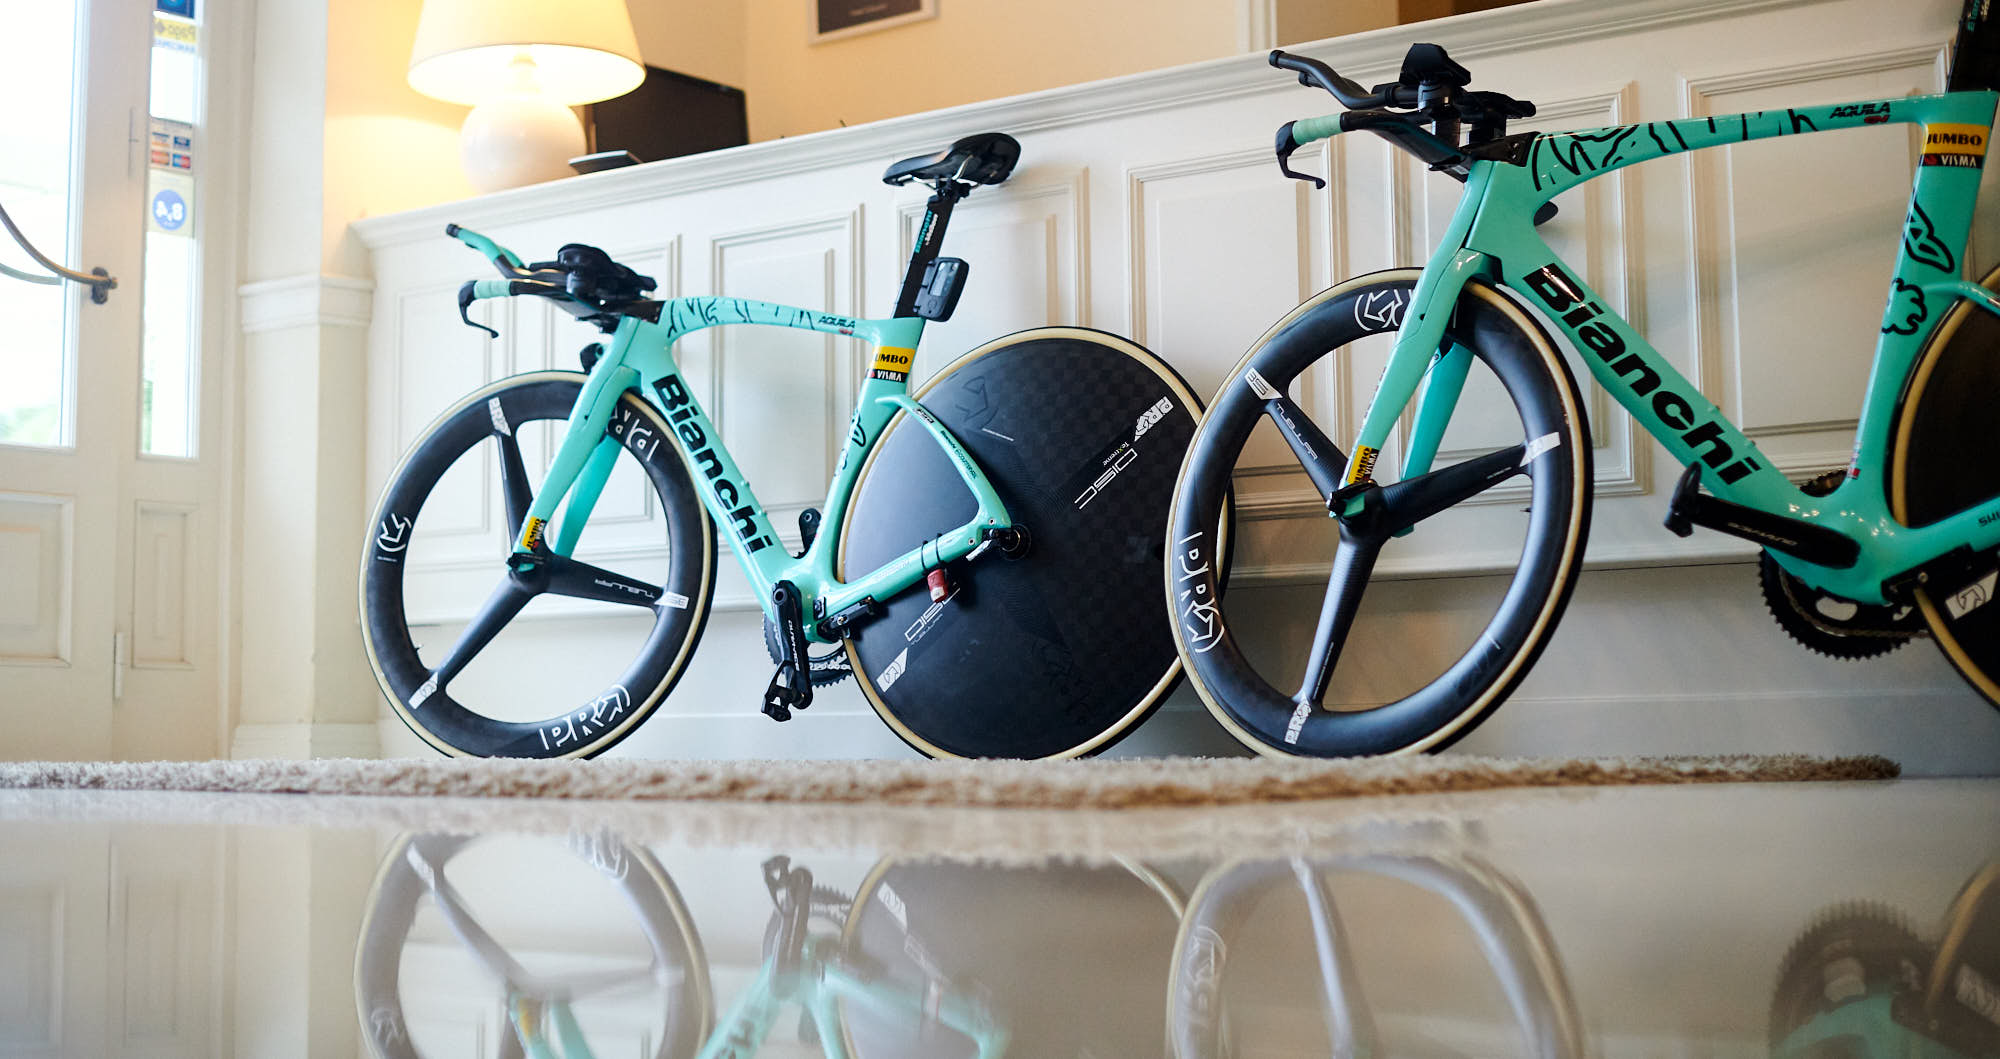 Bianchi time trial bikes in a hotel lobby